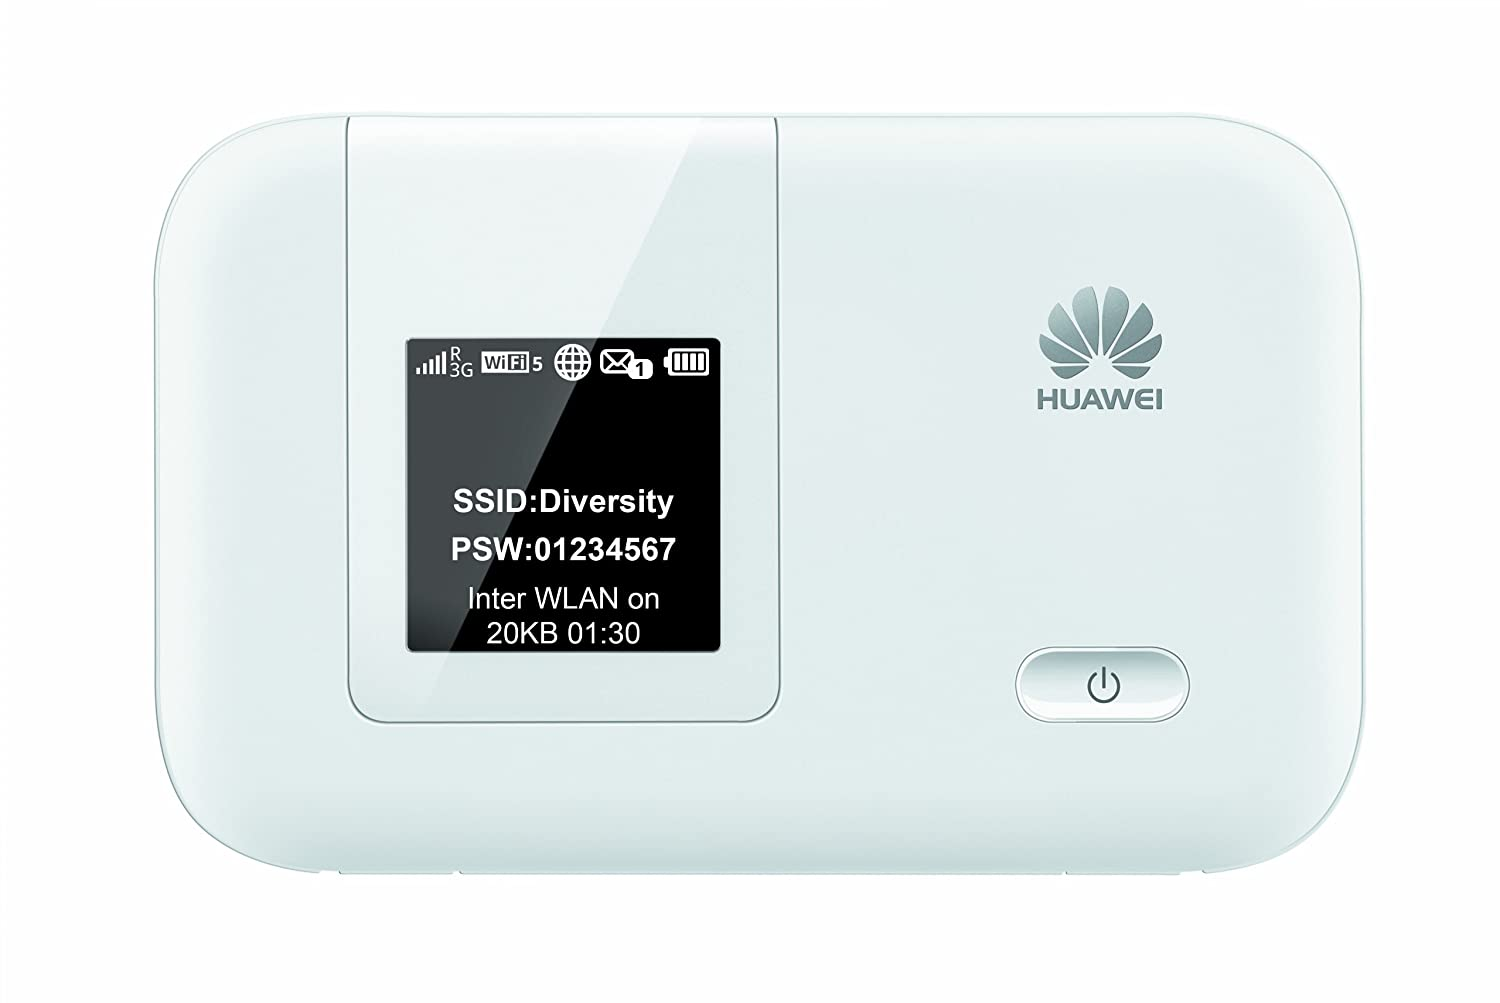 HUAWEI E5372s-32 150 Mbps 4G LTE & 42 Mbps 3G Mobile WiFi Hotspot (3G Worldwide, 4G LTE in Europe, Asia, Middle East, Africa) (White)